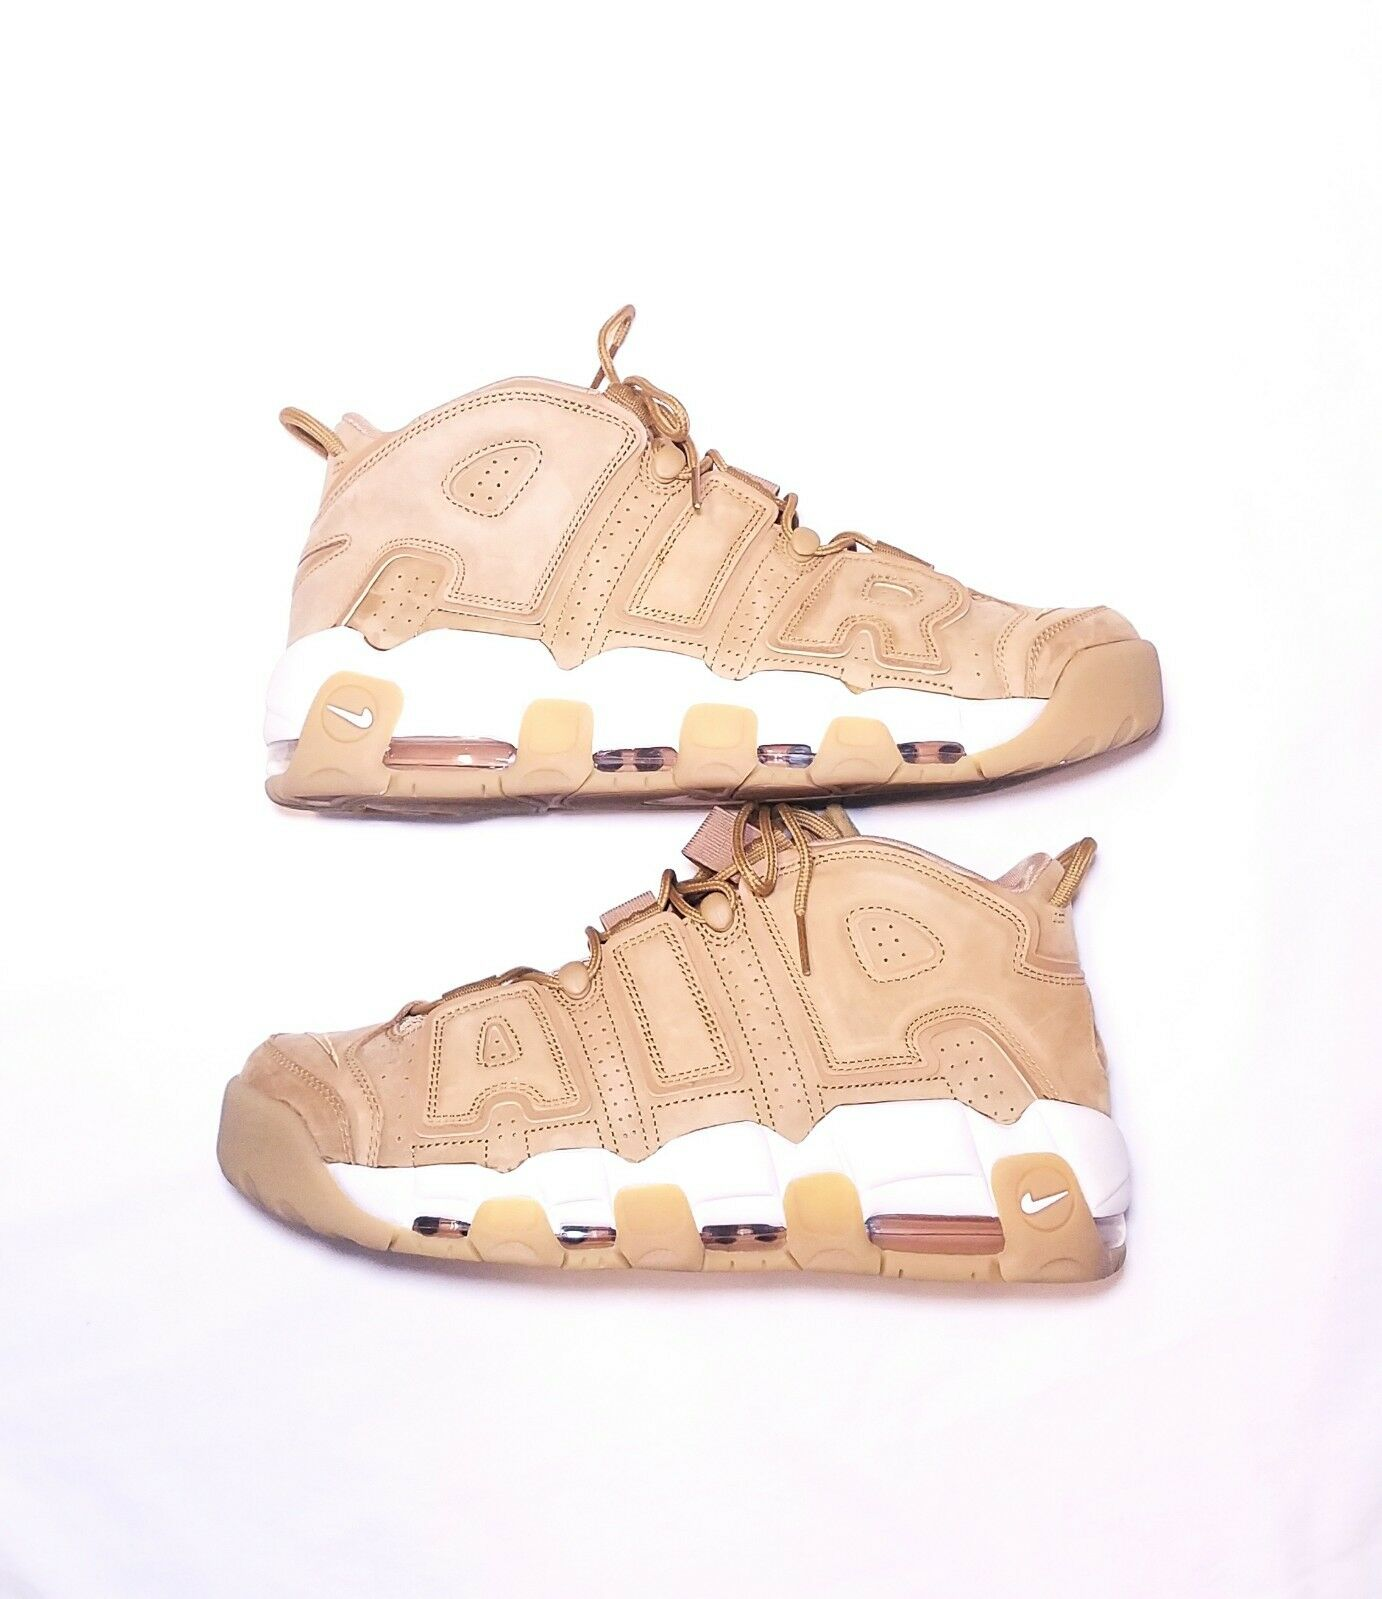 Nike Nike Nike air more uptempo wheat size 11.5 454206